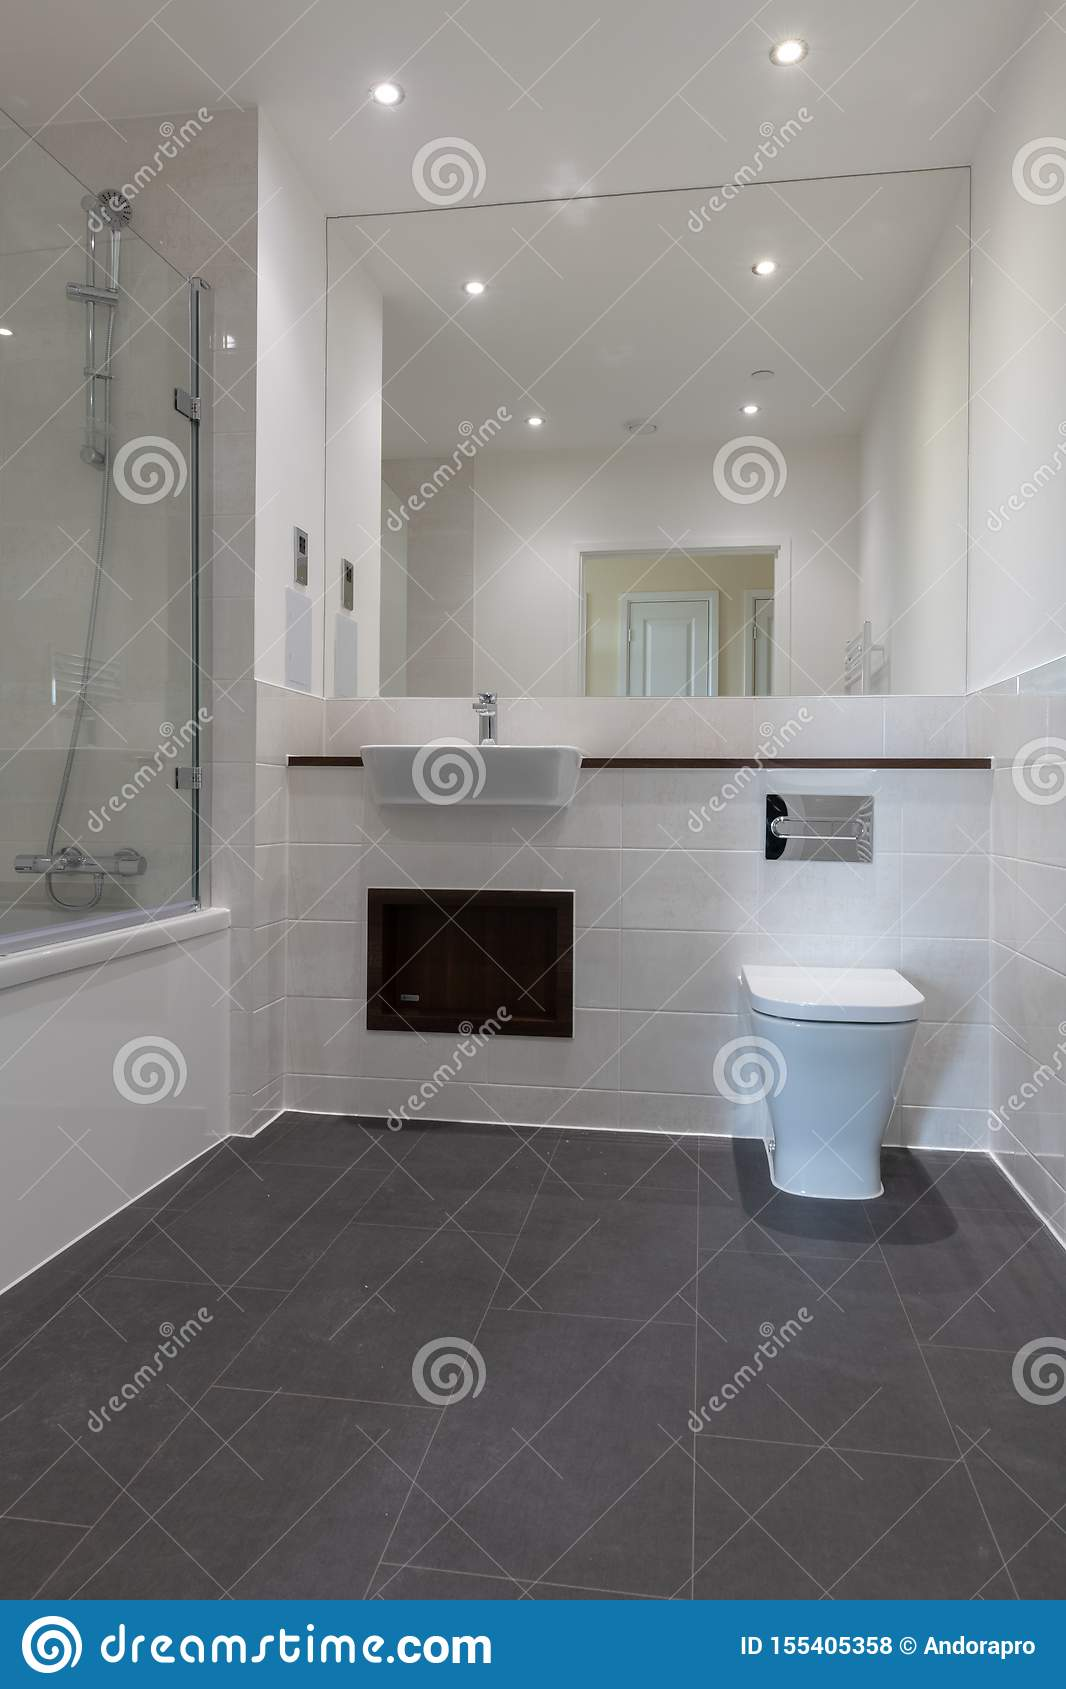 Bathroom Stock Photo Image Of Lavatory Walls Restroom 155405358